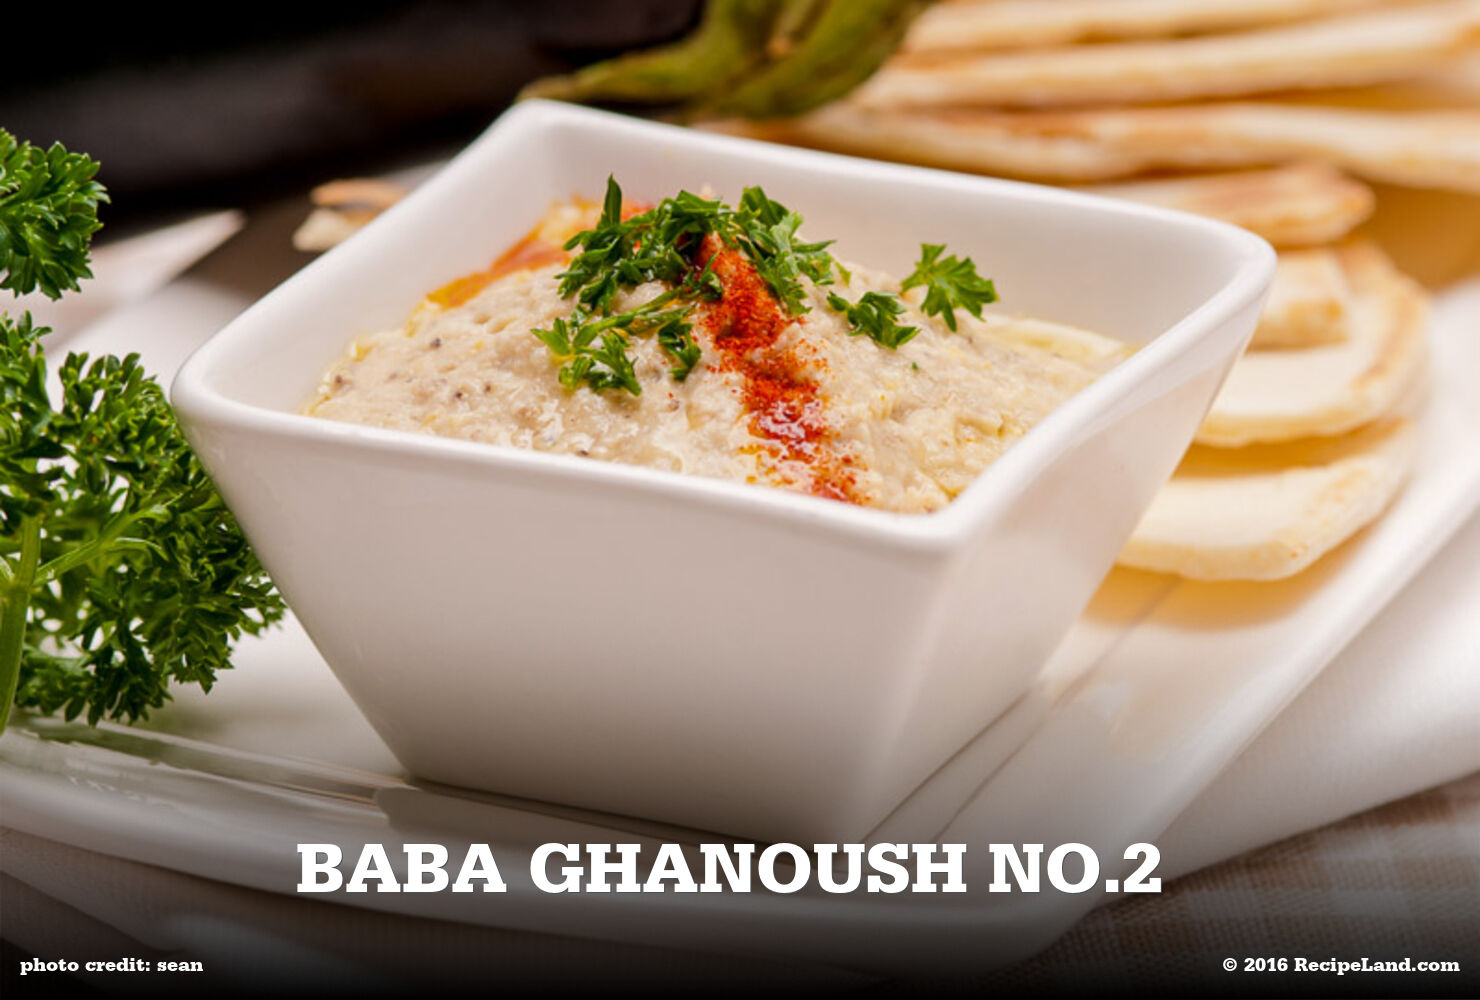 Baba Ghanoush No.2